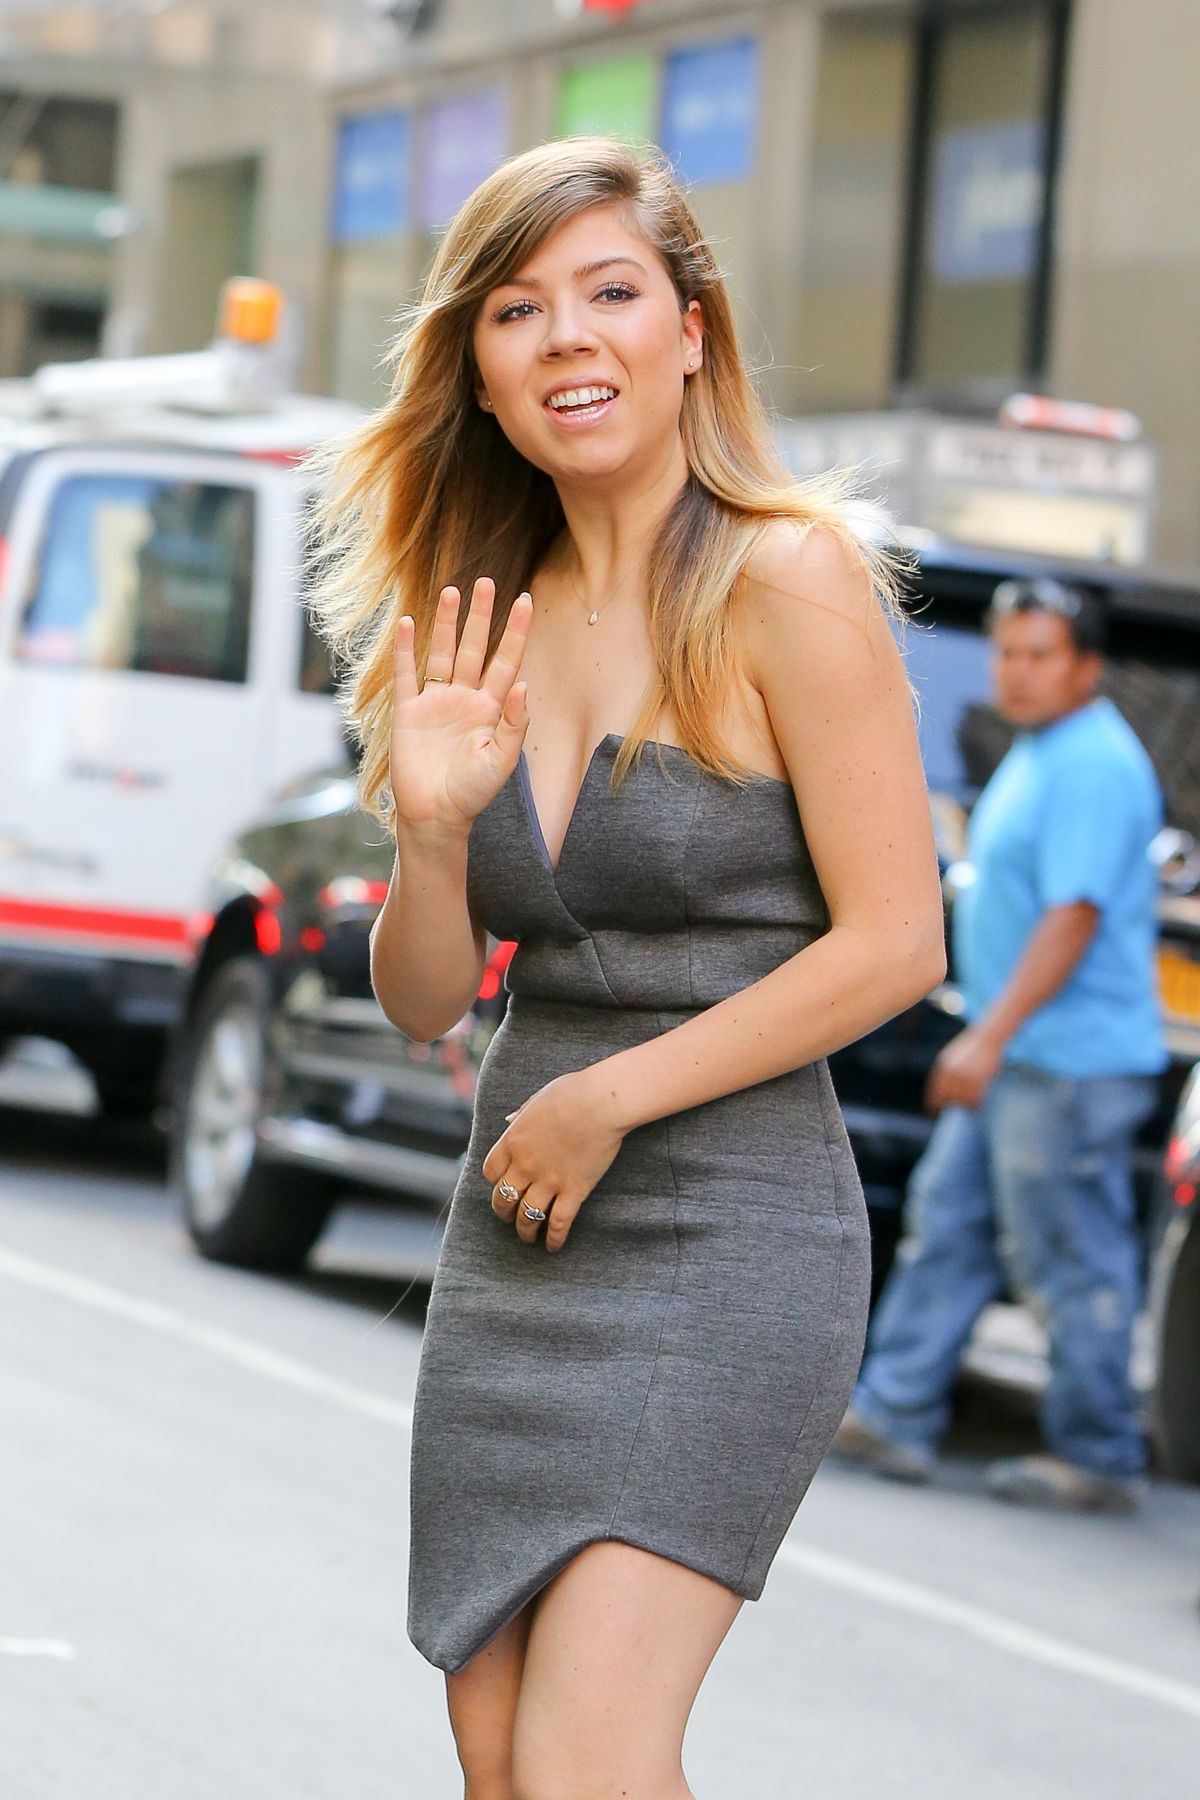 jennette mccurdy moviesjennette mccurdy instagram, jennette mccurdy scandalous, jennette mccurdy википедия, jennette mccurdy wikipedia, jennette mccurdy films, jennette mccurdy icarly, jennette mccurdy vine, jennette mccurdy inst, jennette mccurdy has a twin, jennette mccurdy pet, jennette mccurdy put your arms around someone lyrics, jennette mccurdy generation love mp3, jennette mccurdy mom, jennette mccurdy died, jennette mccurdy - generation love, jennette mccurdy parents, jennette mccurdy not that far away lyrics, jennette mccurdy insta, jennette mccurdy phone hacked, jennette mccurdy movies